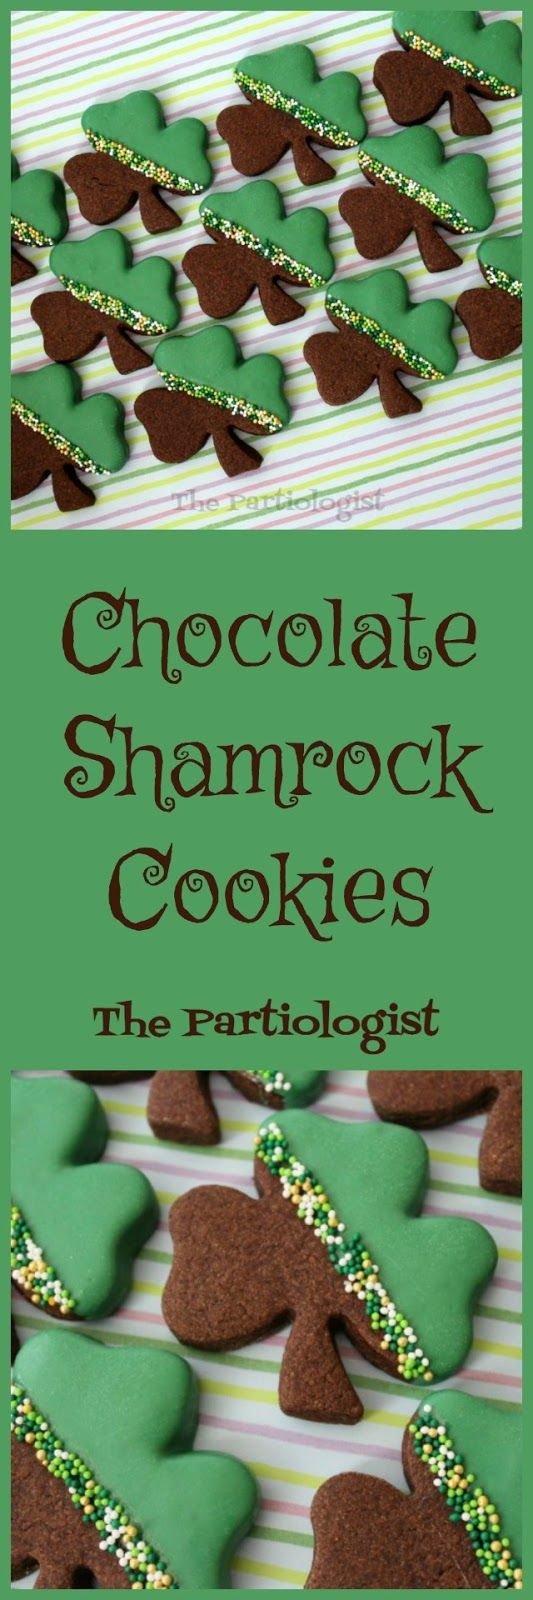 I think the better title for the post should be Lucky Shamrocks. Because whoever (or is it whomever?) receives the cookies is one lucky le...